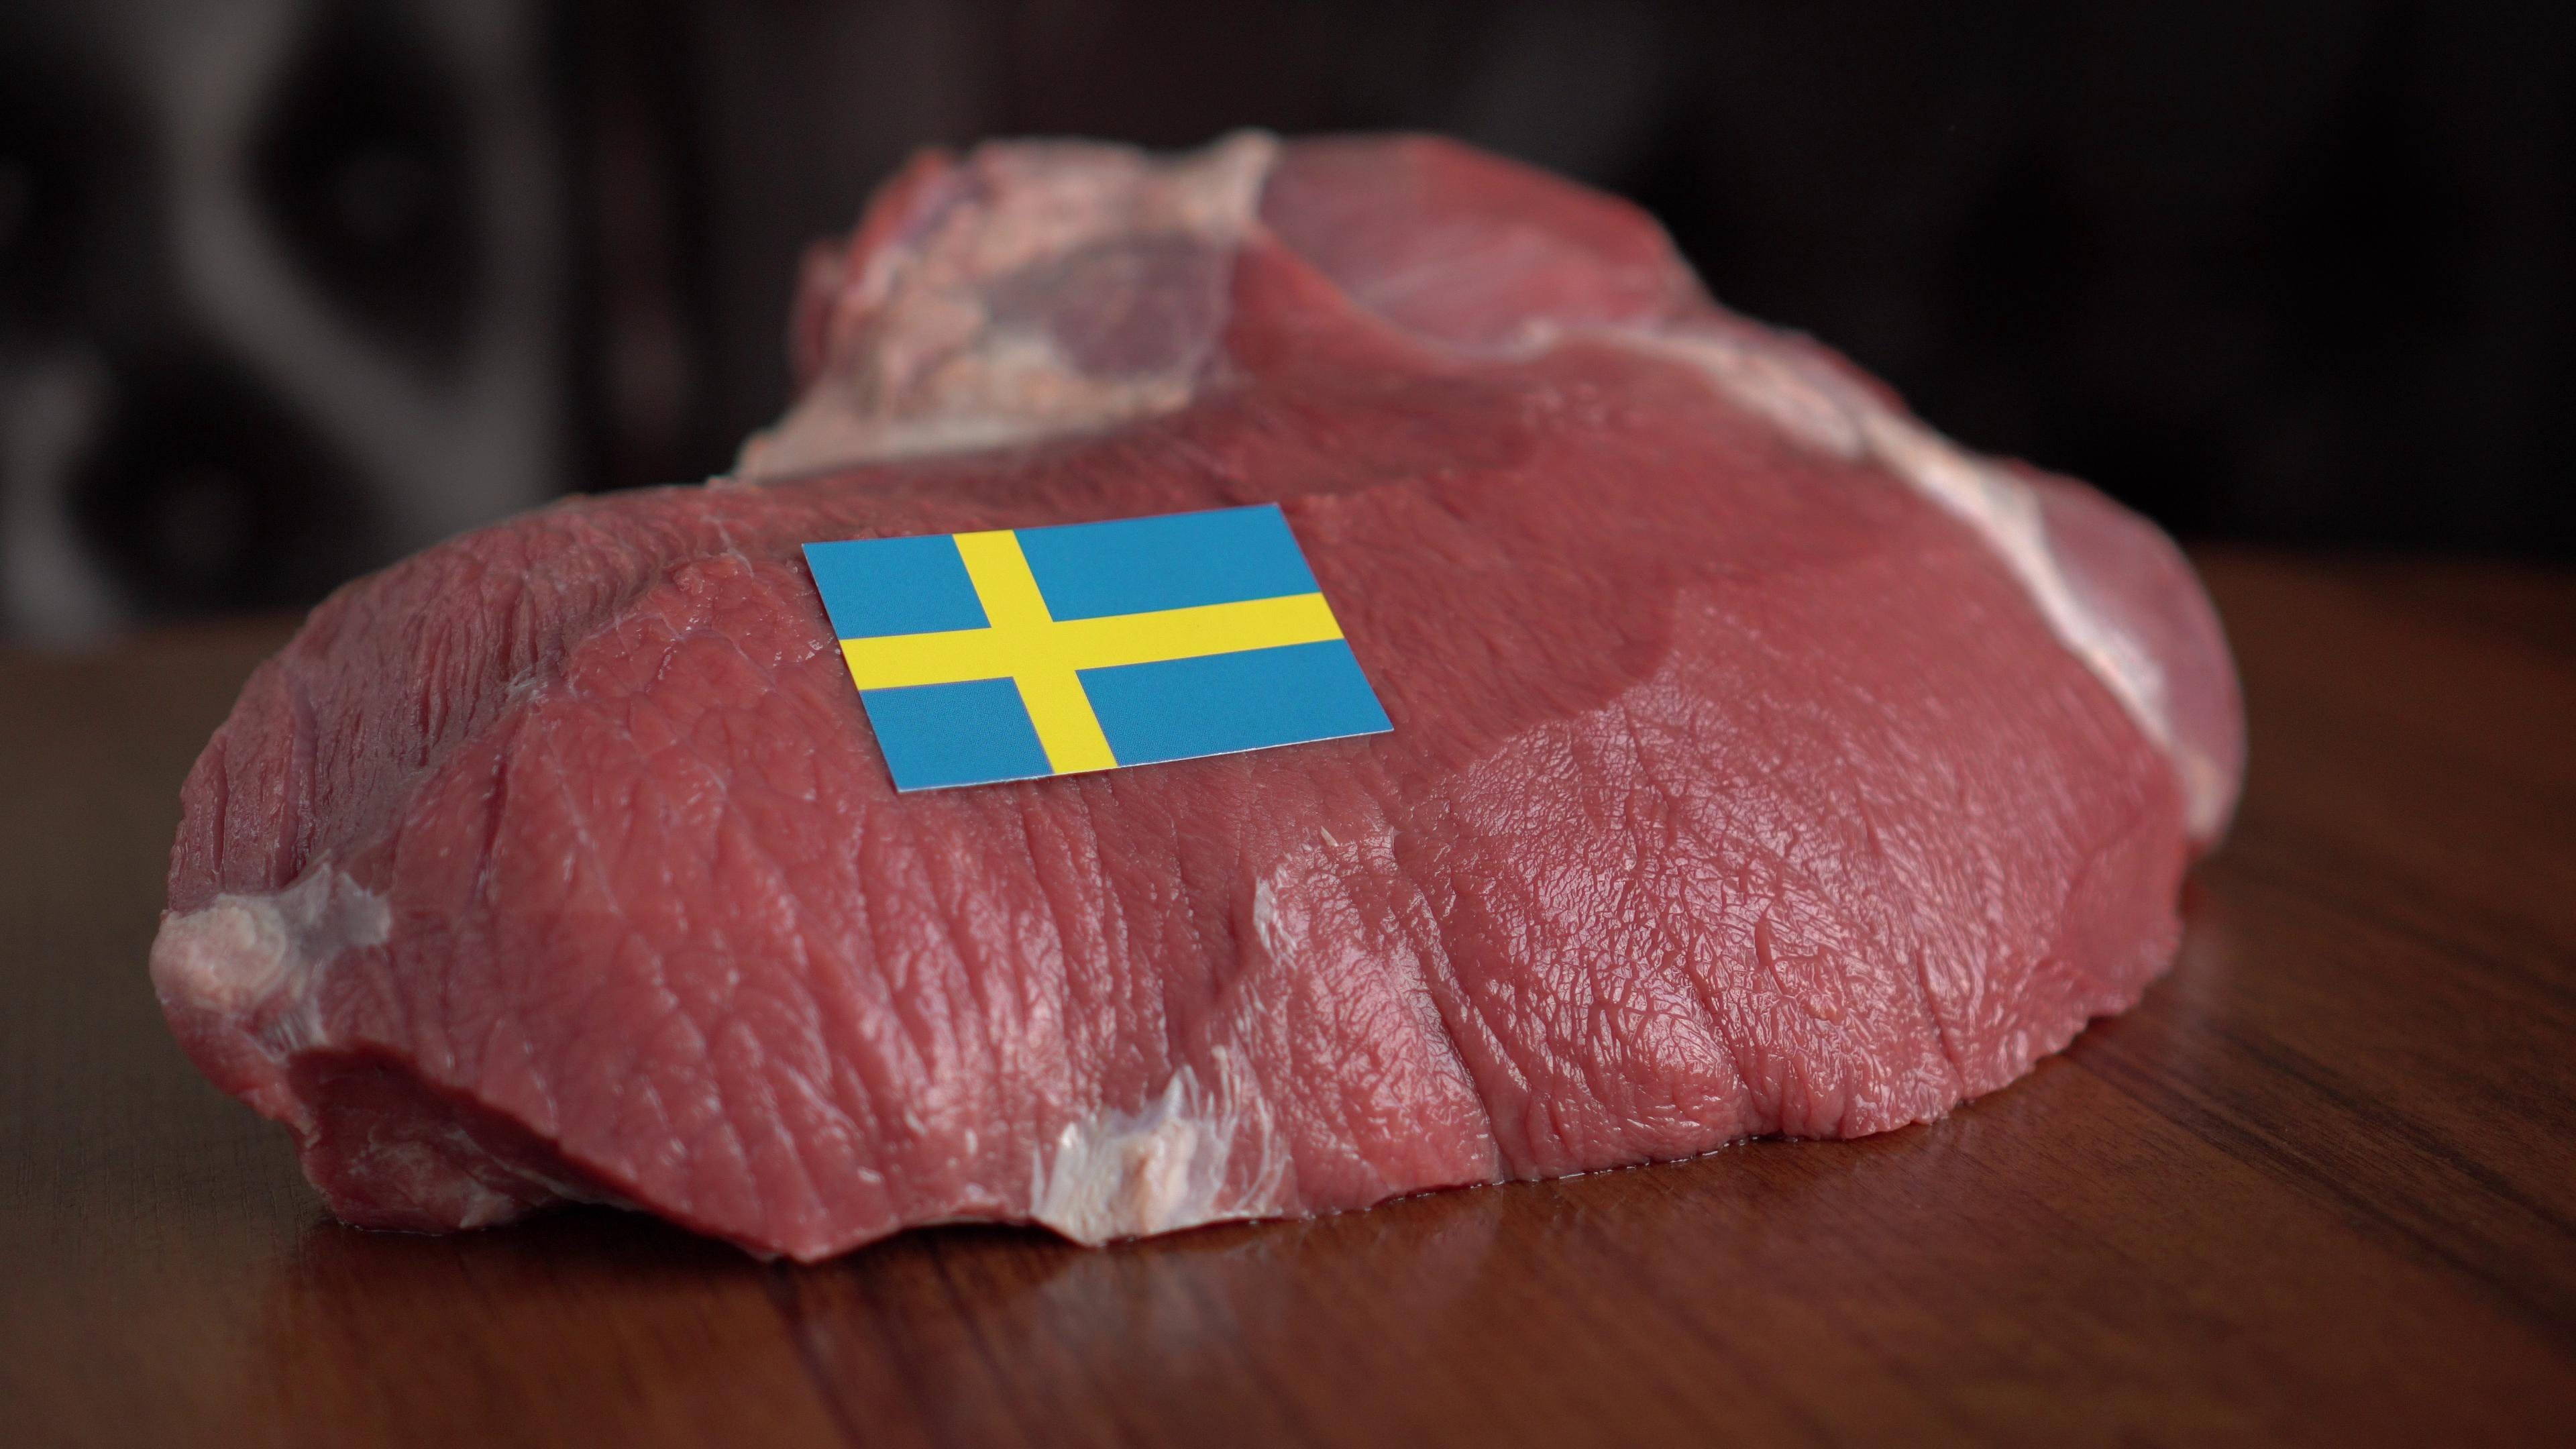 Raw meat and flag of Sweden